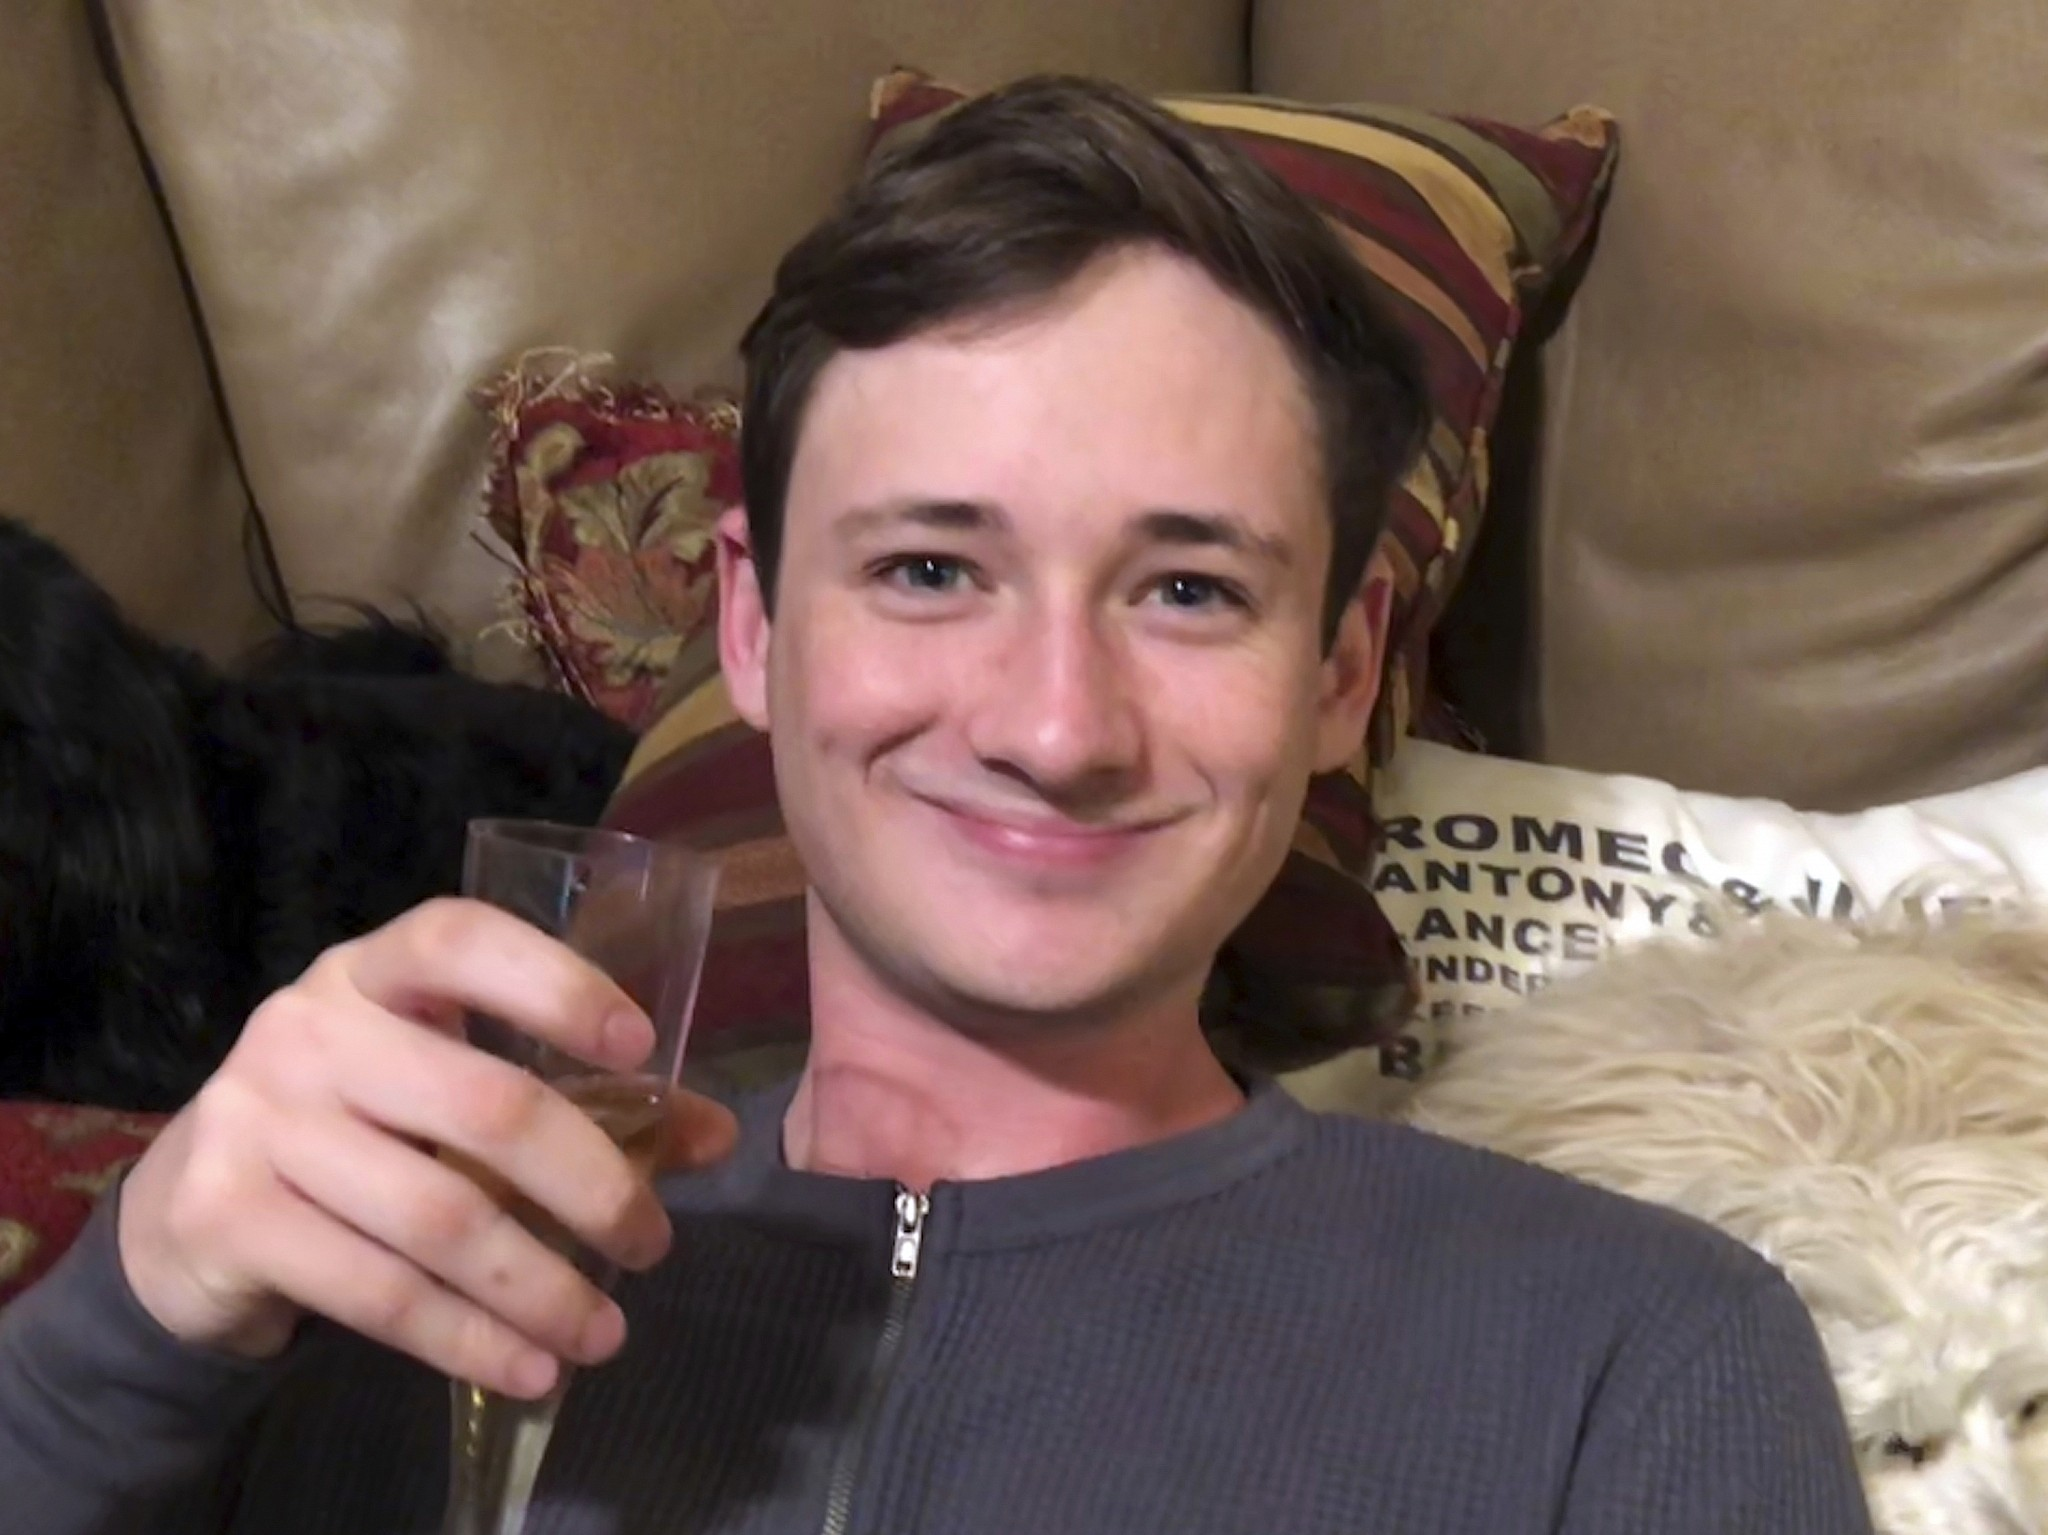 Blaze Bernstein stabbed at least 20 times in possible act of rage